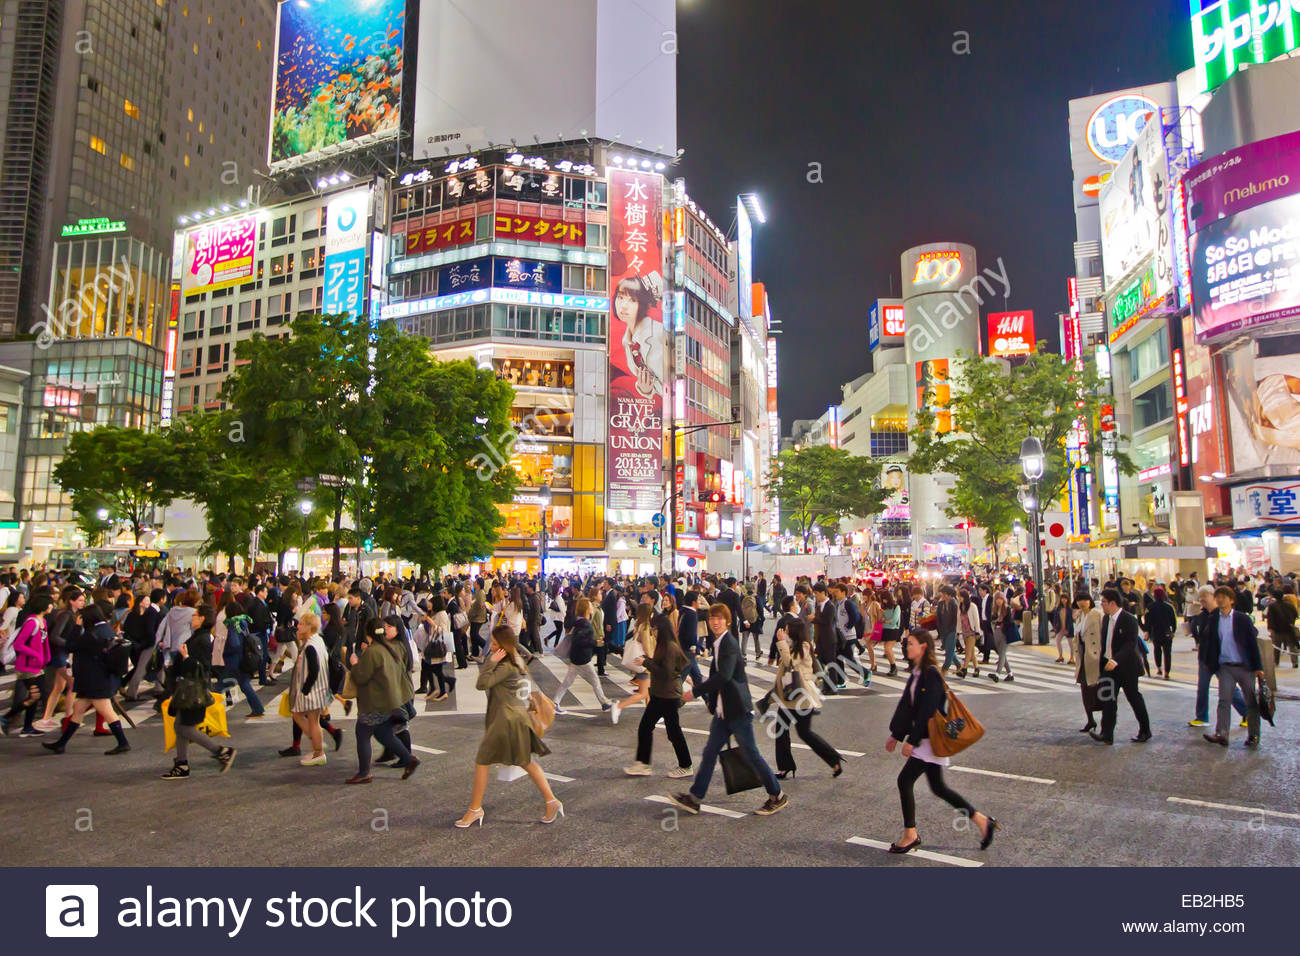 The famous Shibuya crossing where thousands of people cross daily. - Stock Image